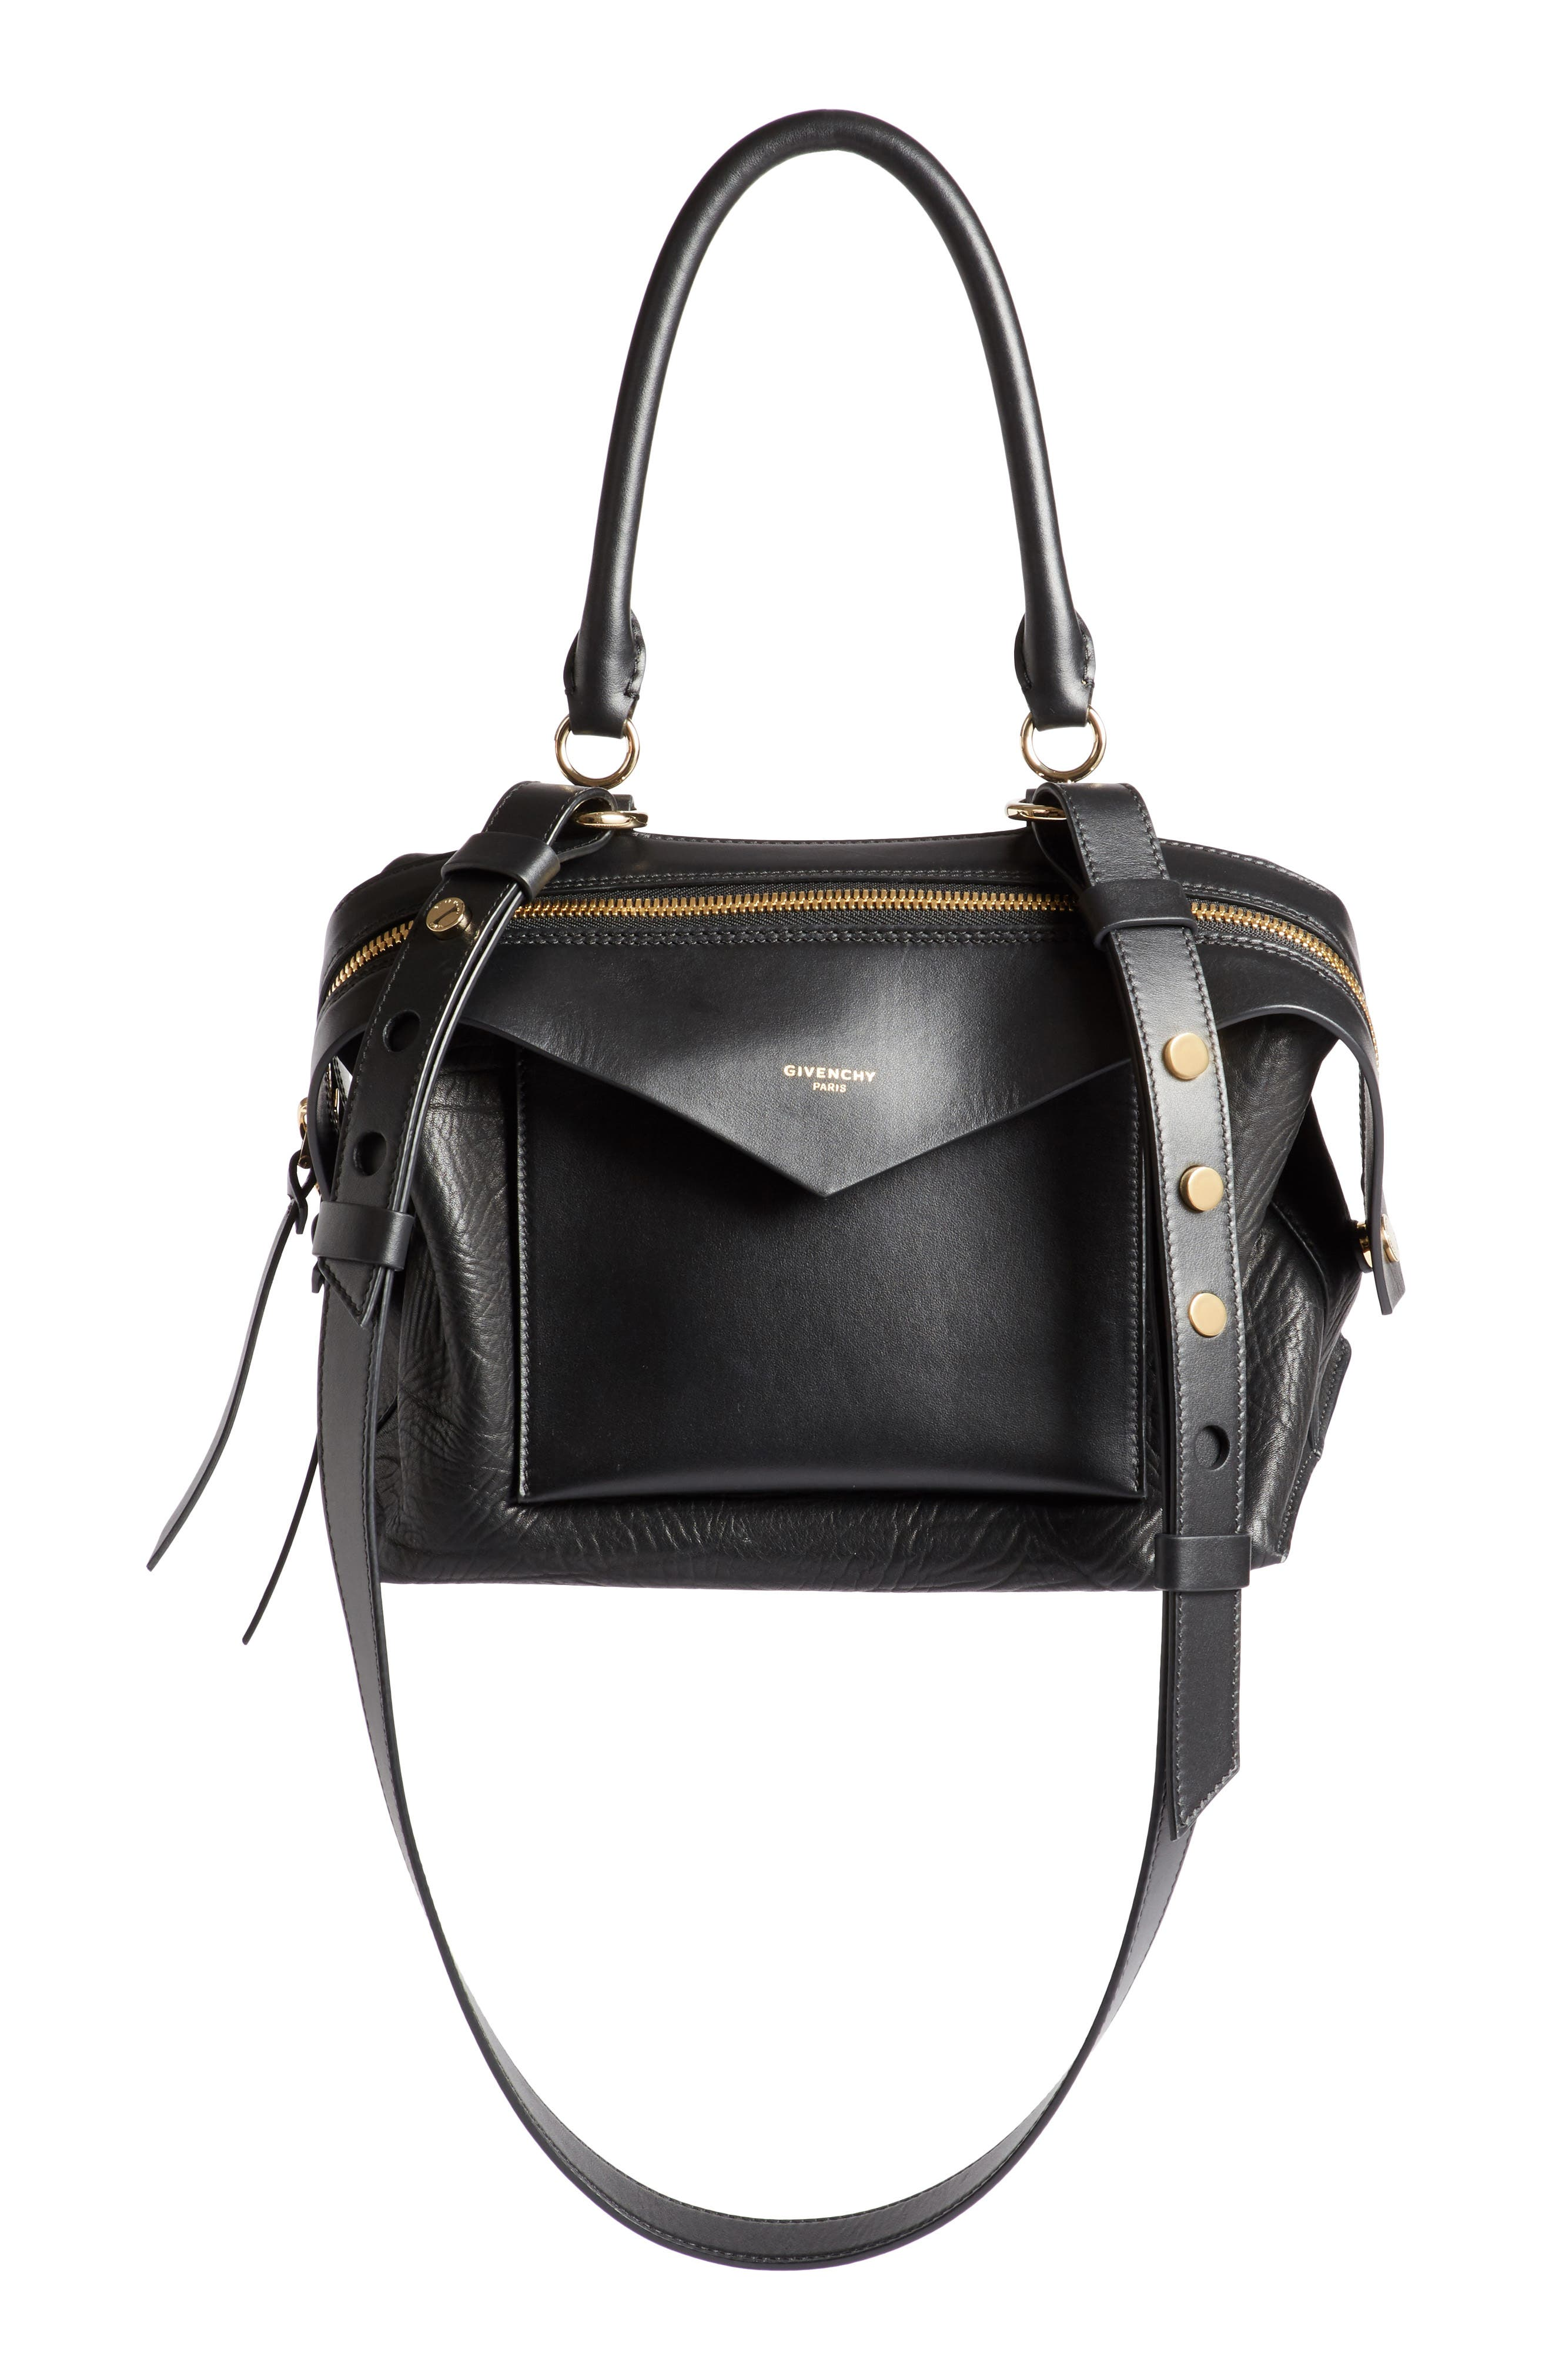 Givenchy Small Sway Leather Satchel